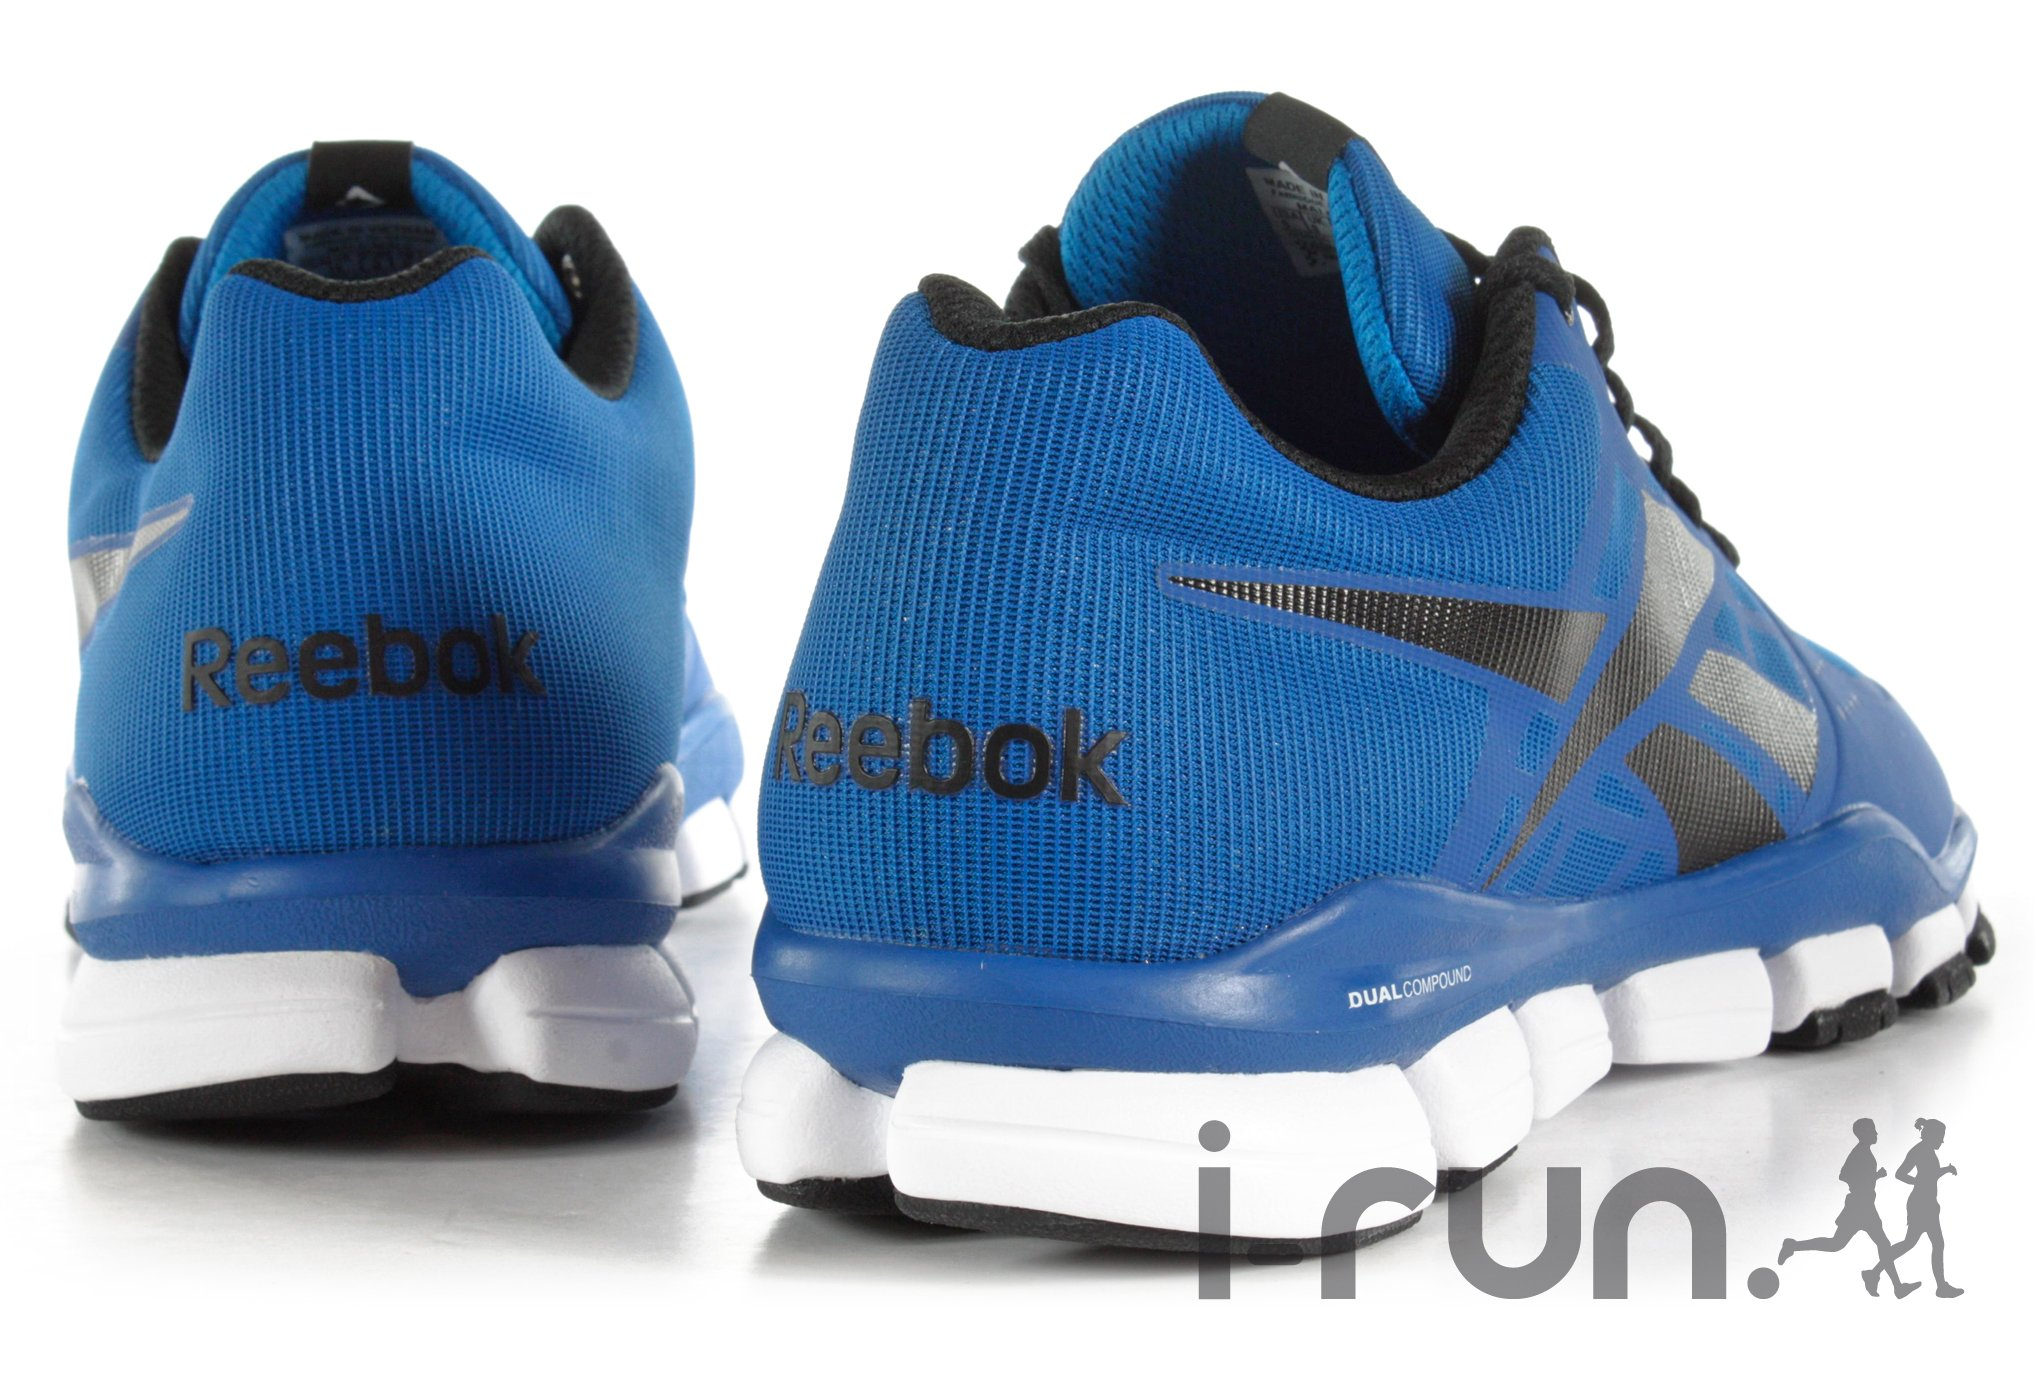 Transition Chaussures Reebok Realflex Reebok Chaussures 6gbY7vfy